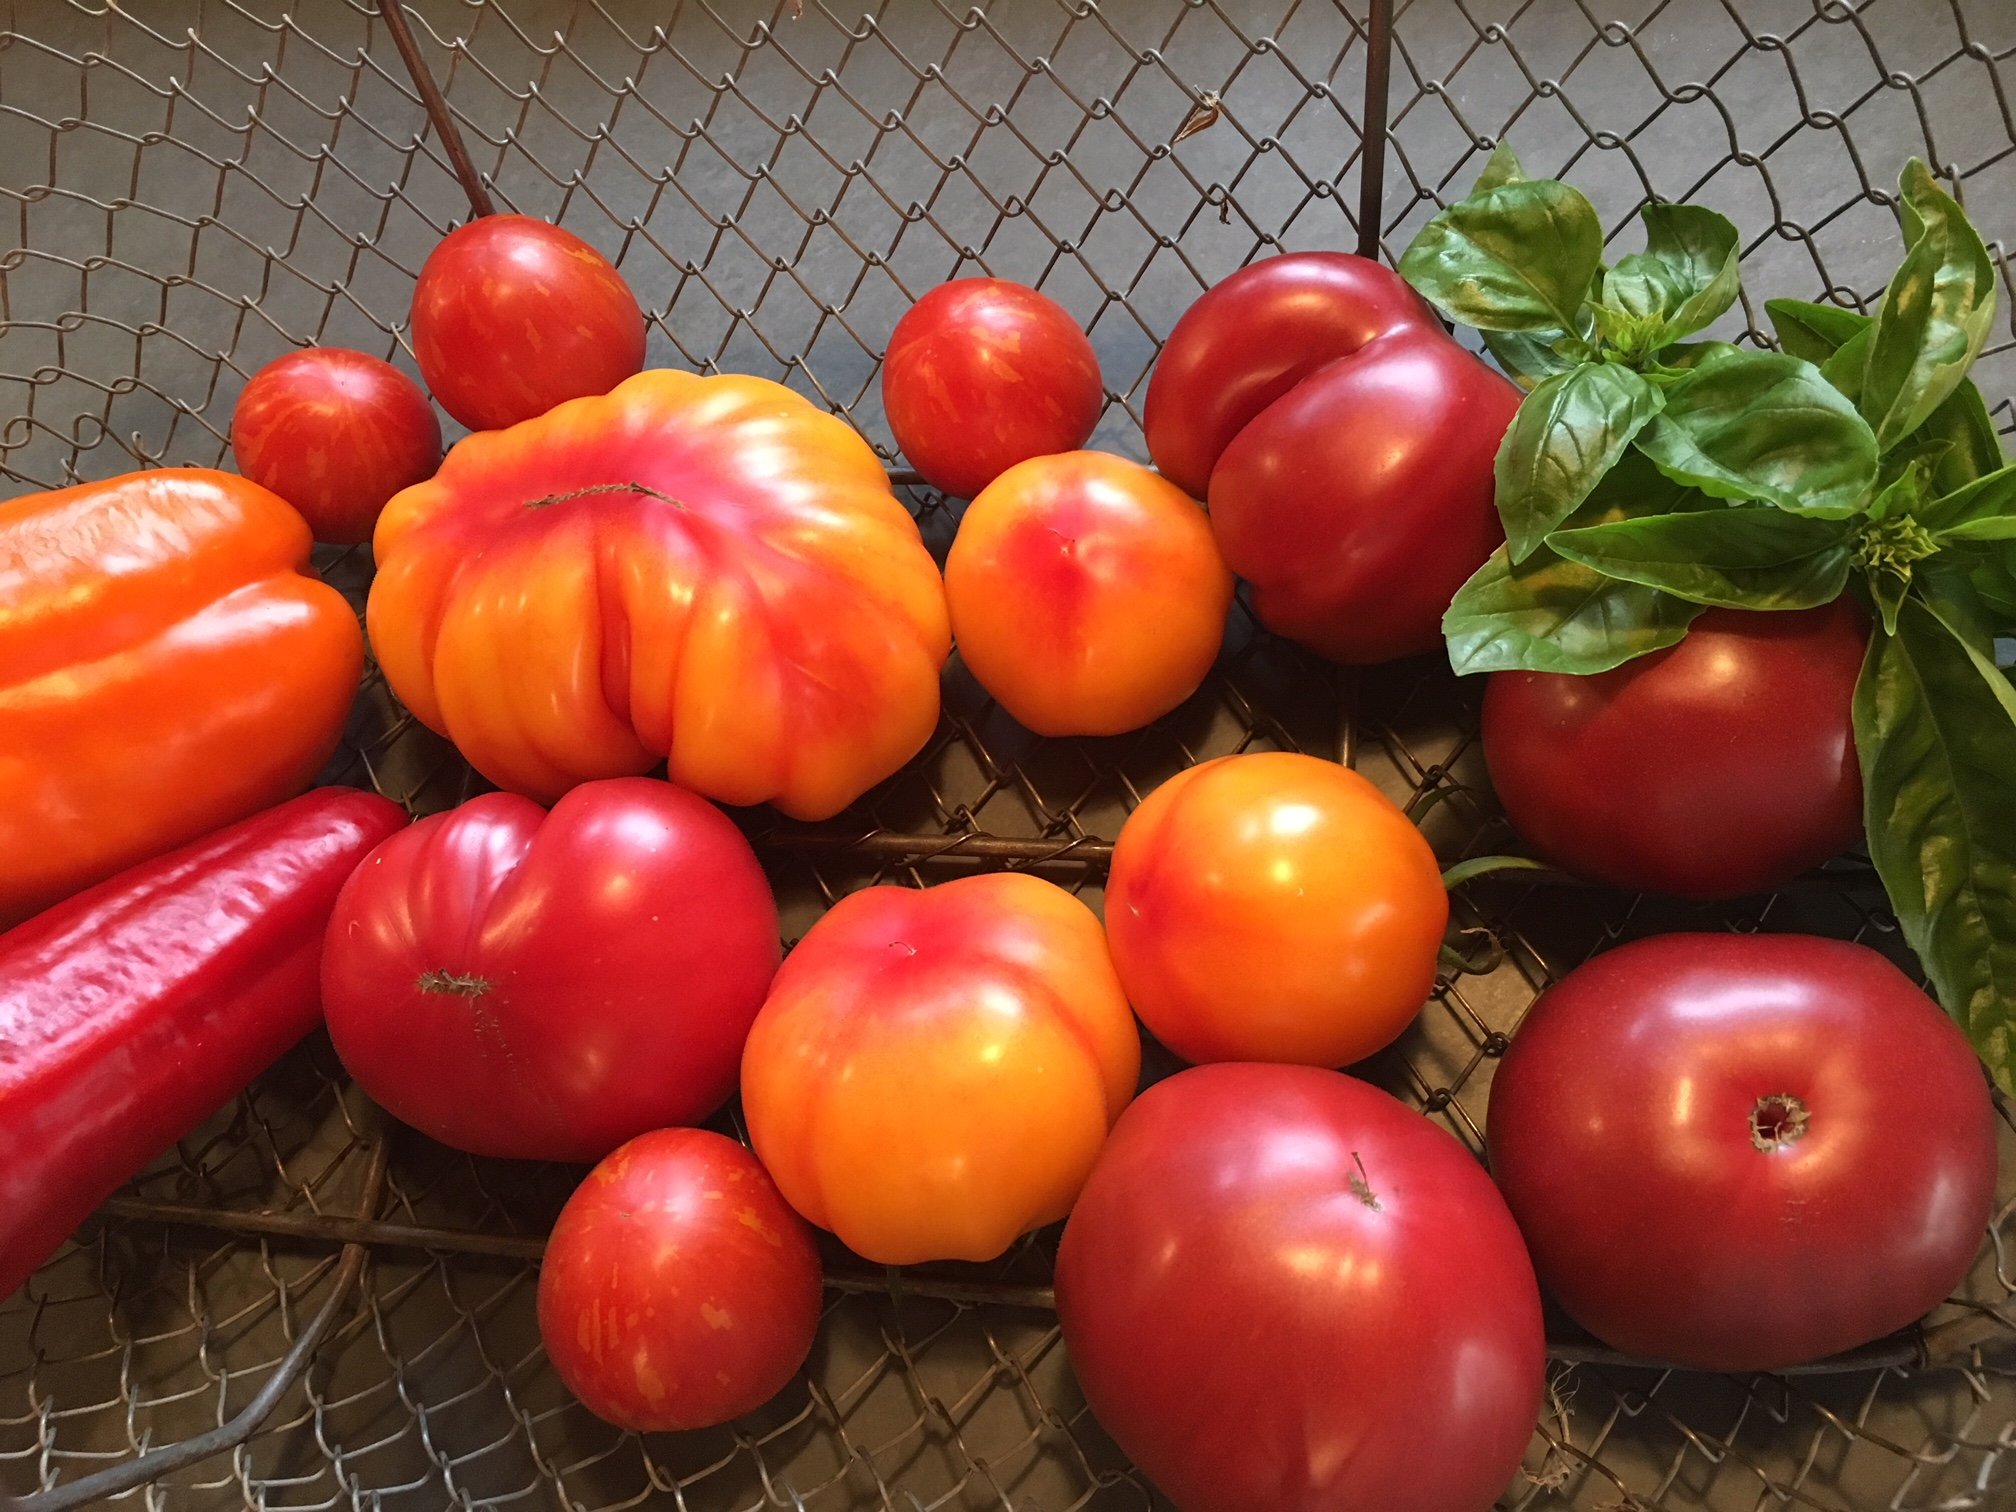 Tomatoes in basket 8:18